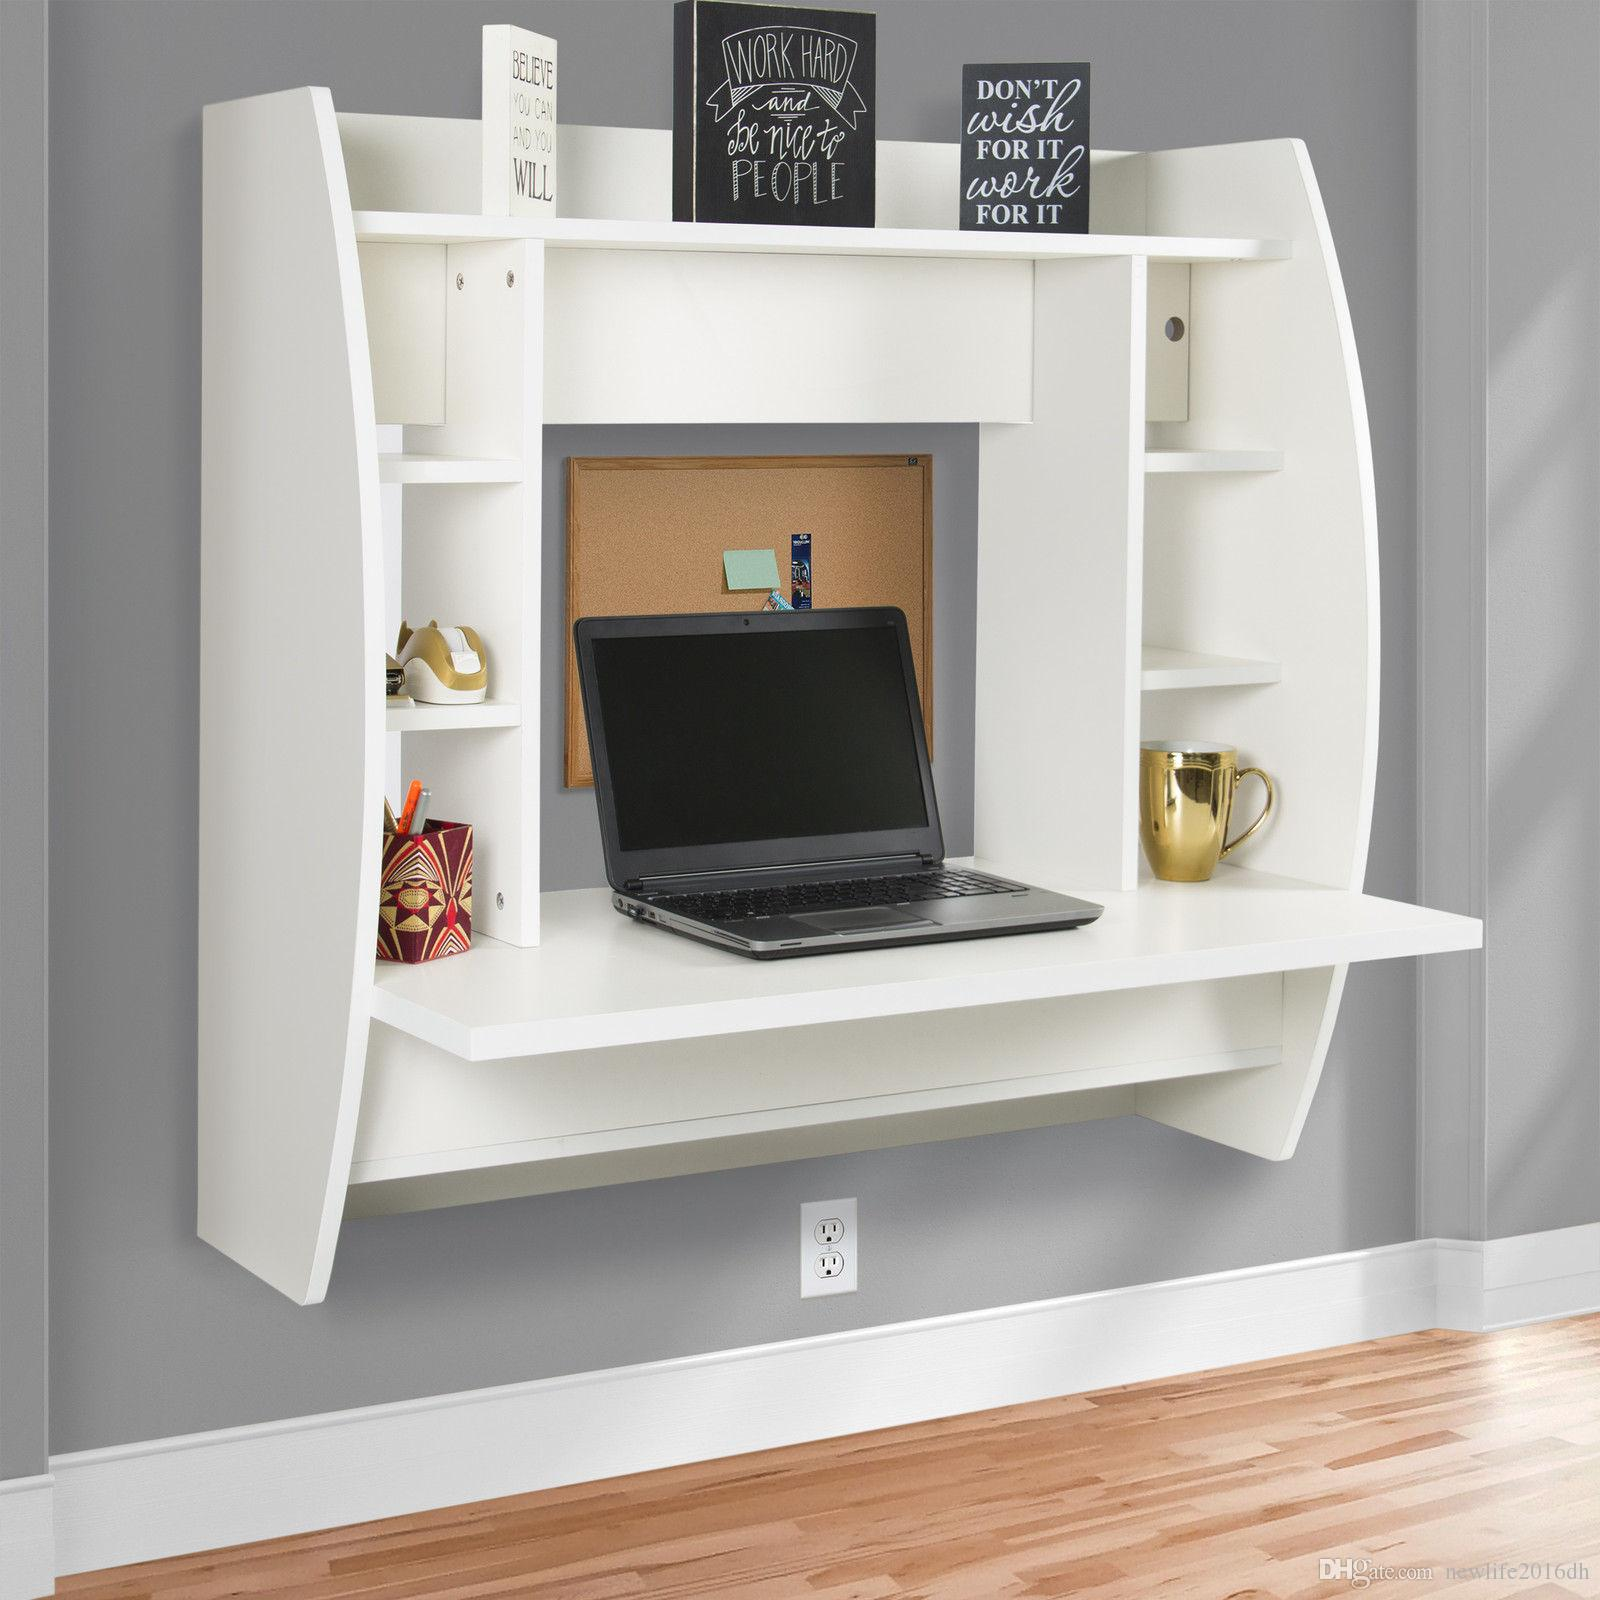 wall mount floating computer desk with storage shelves home shelf work station white from dhgate hanging bathroom cabinet over toilet multi tier corner glass display built closet